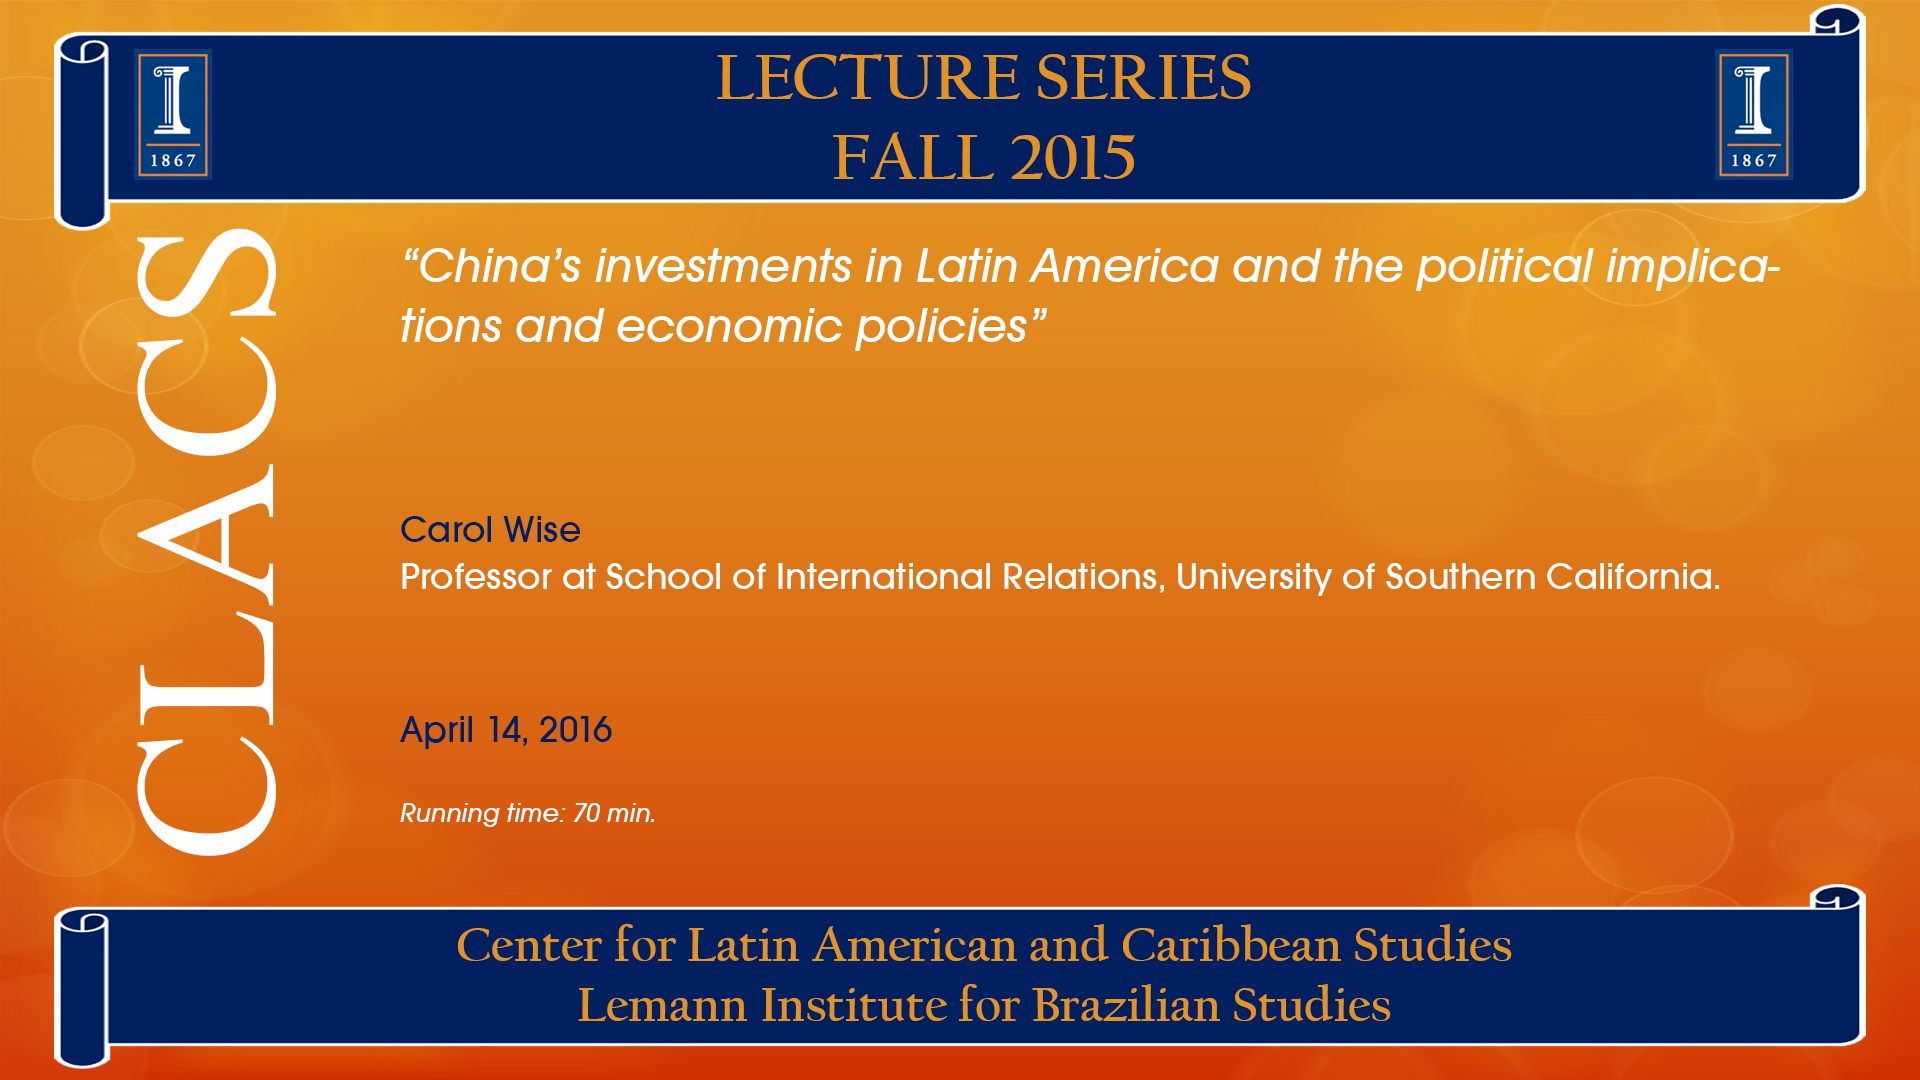 China's investments in Latin America and the political implications and economic policies